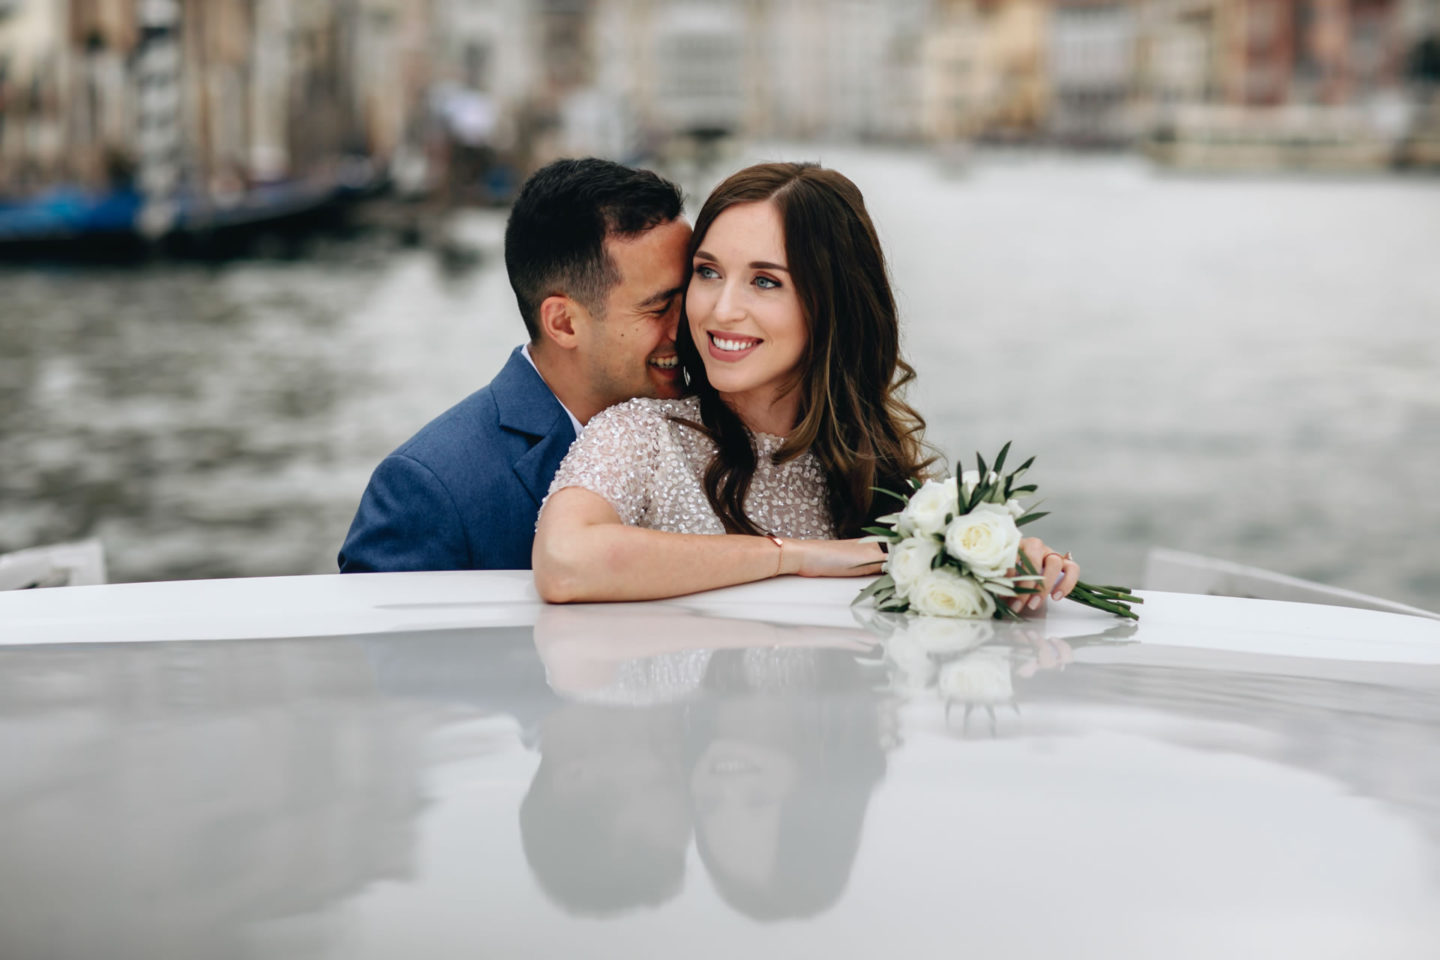 Romantic elopement in Venice :: Luxury wedding photography - 1